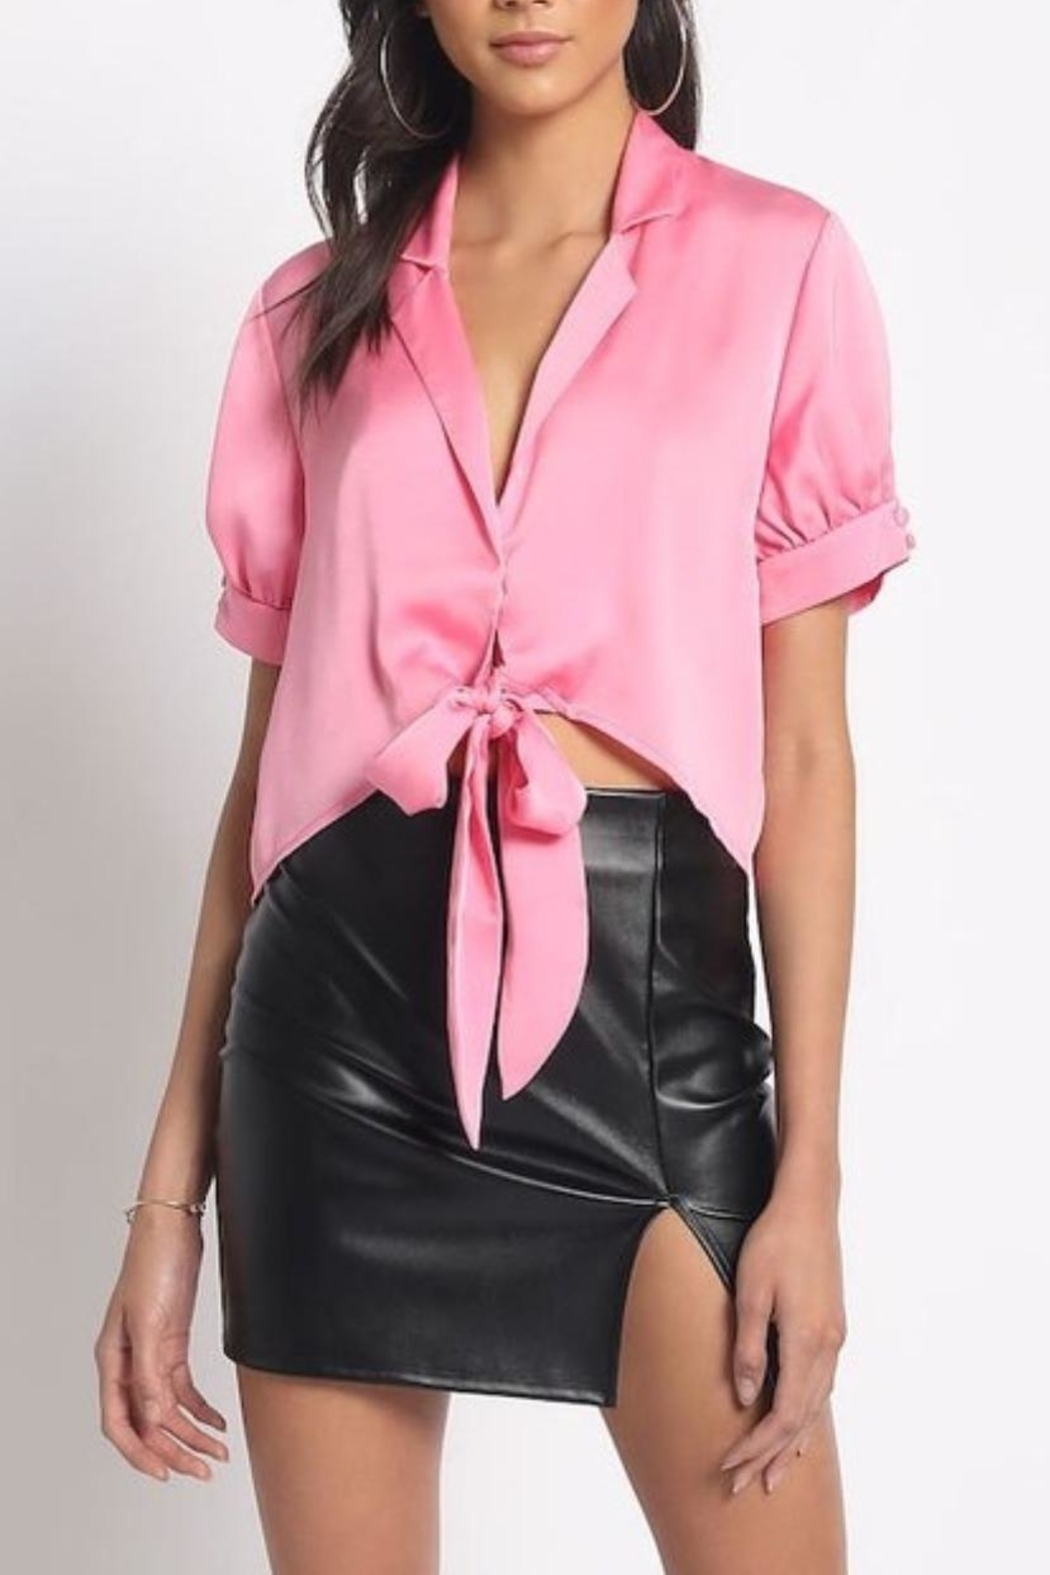 81dceaba35 Sans Souci Pink Satin Blouse from Brooklyn by Glam Expressway ...